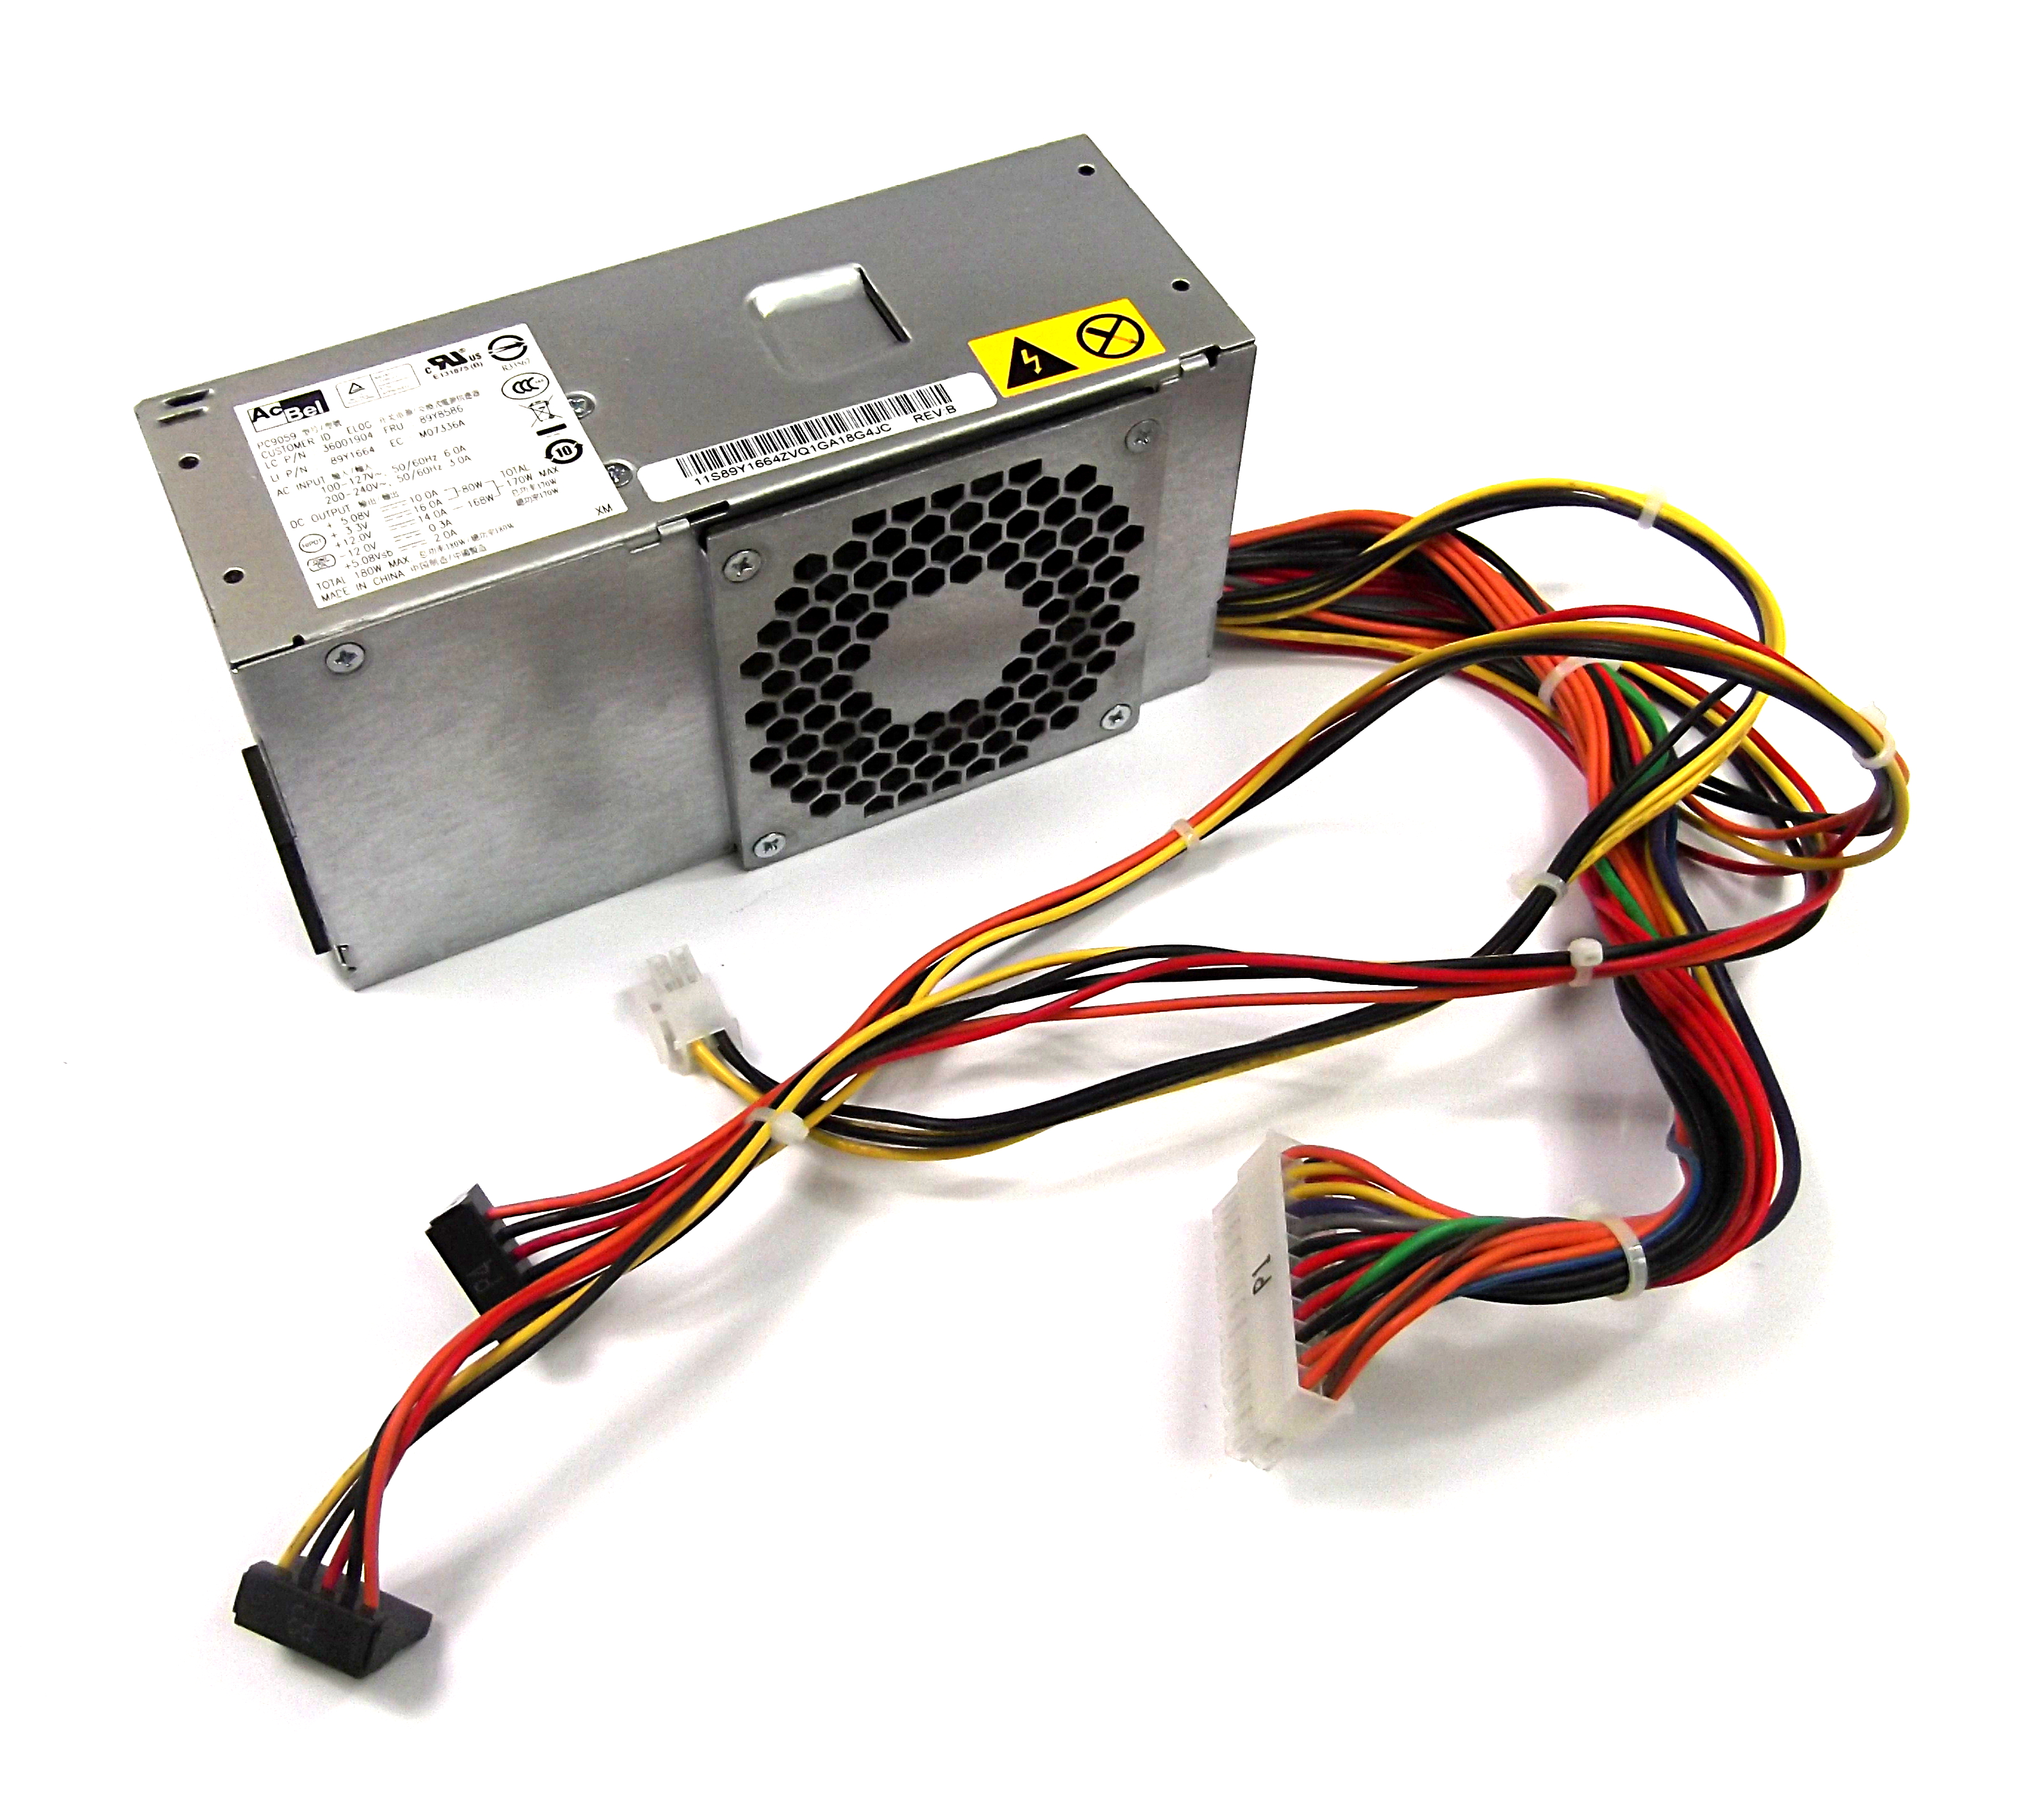 Lenovo 89Y8586 PC9059 180W 24-Pin Power Supply For Lenovo ThinkCentre Edge 72 PC